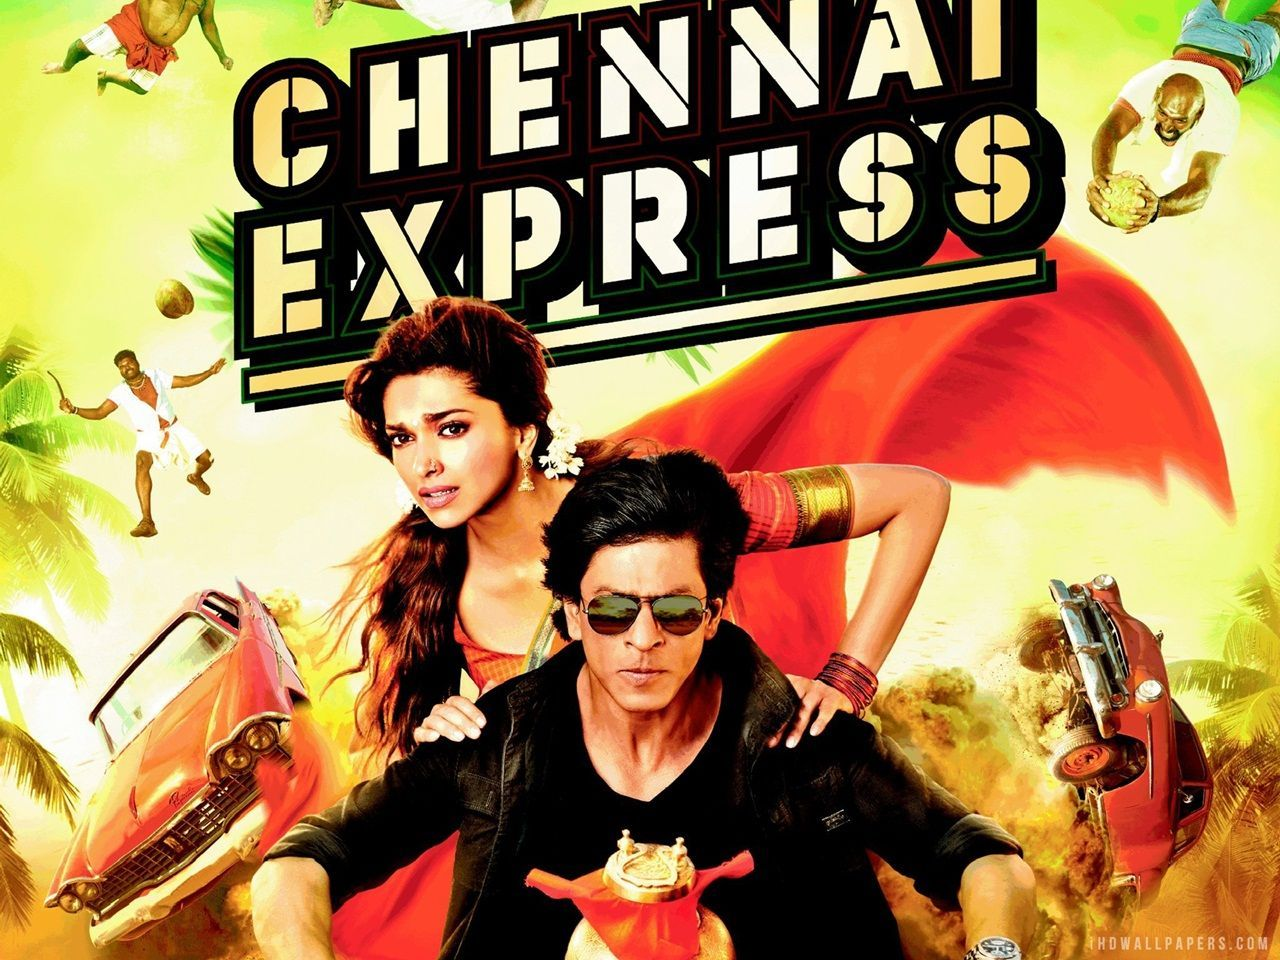 Chennai Express Hindi Film Awesome HD Image Gallery. http ...